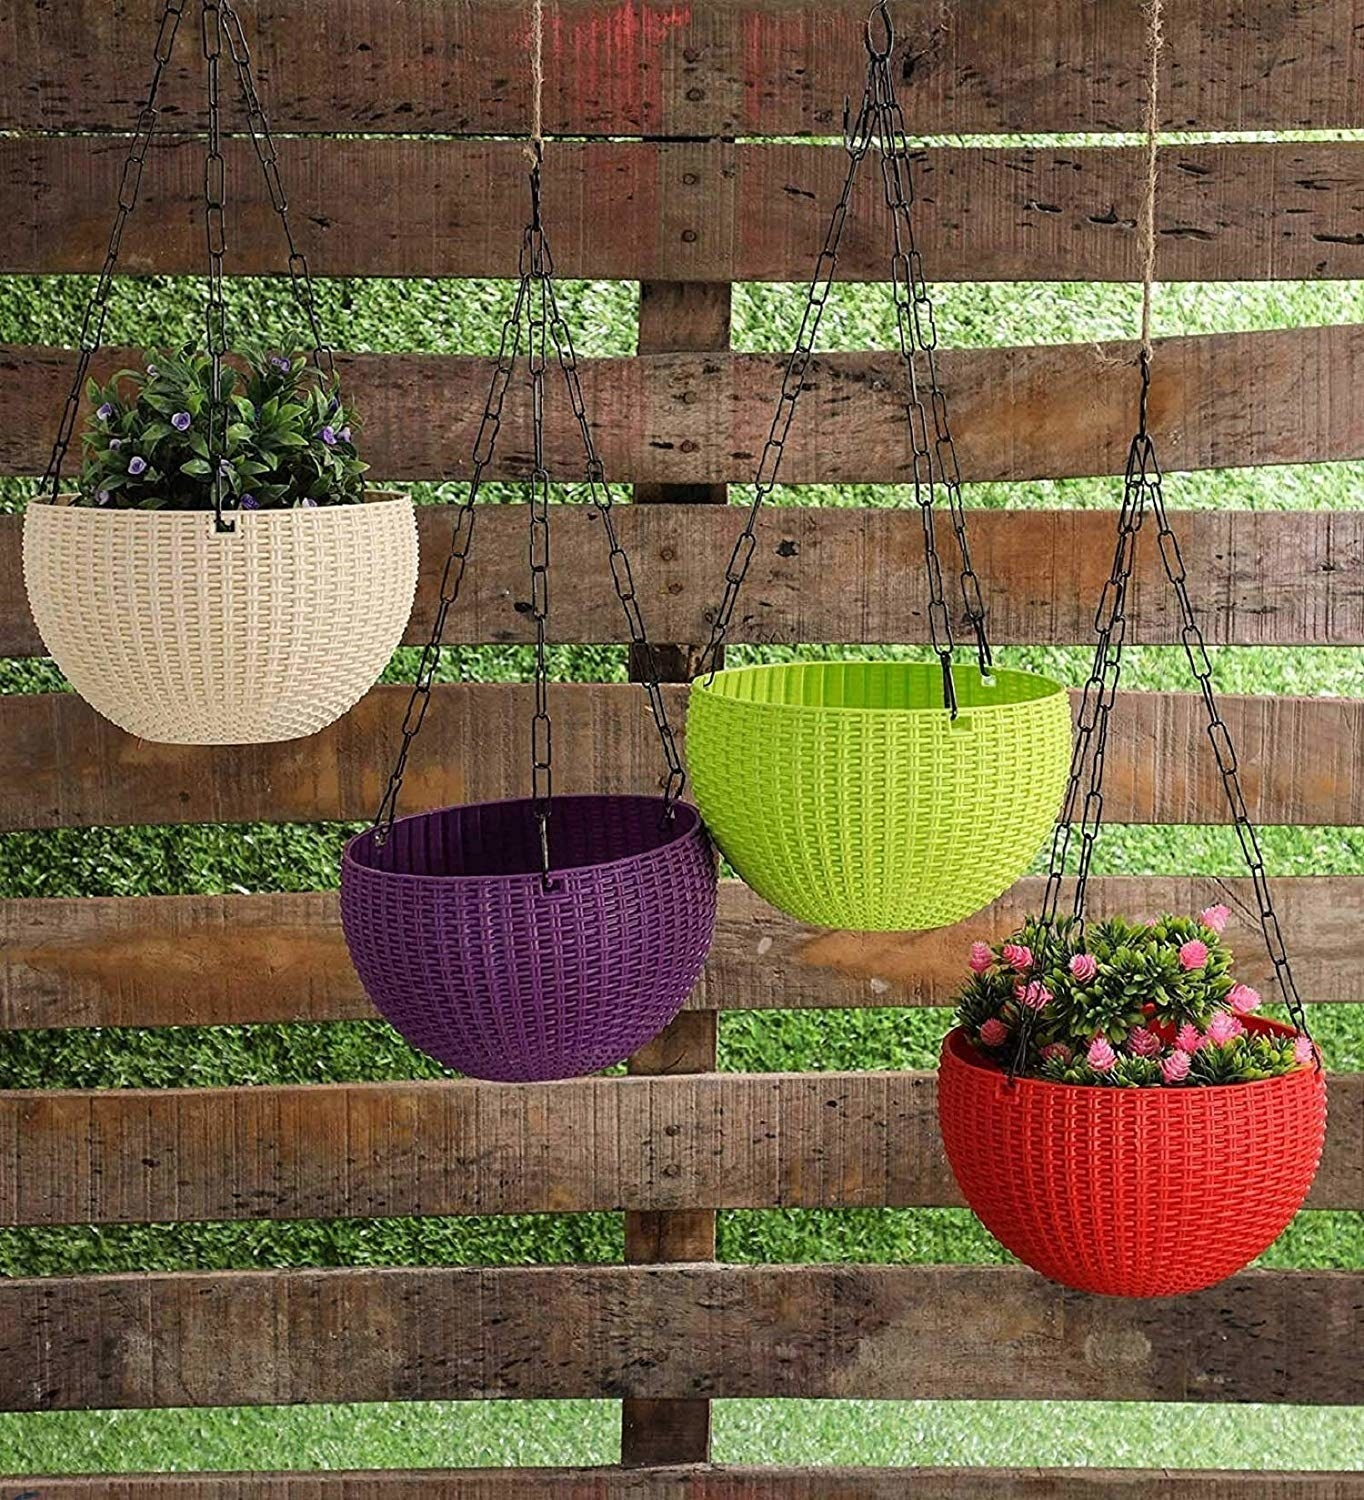 Hanging baskets in front of a wall of wooden blocks.